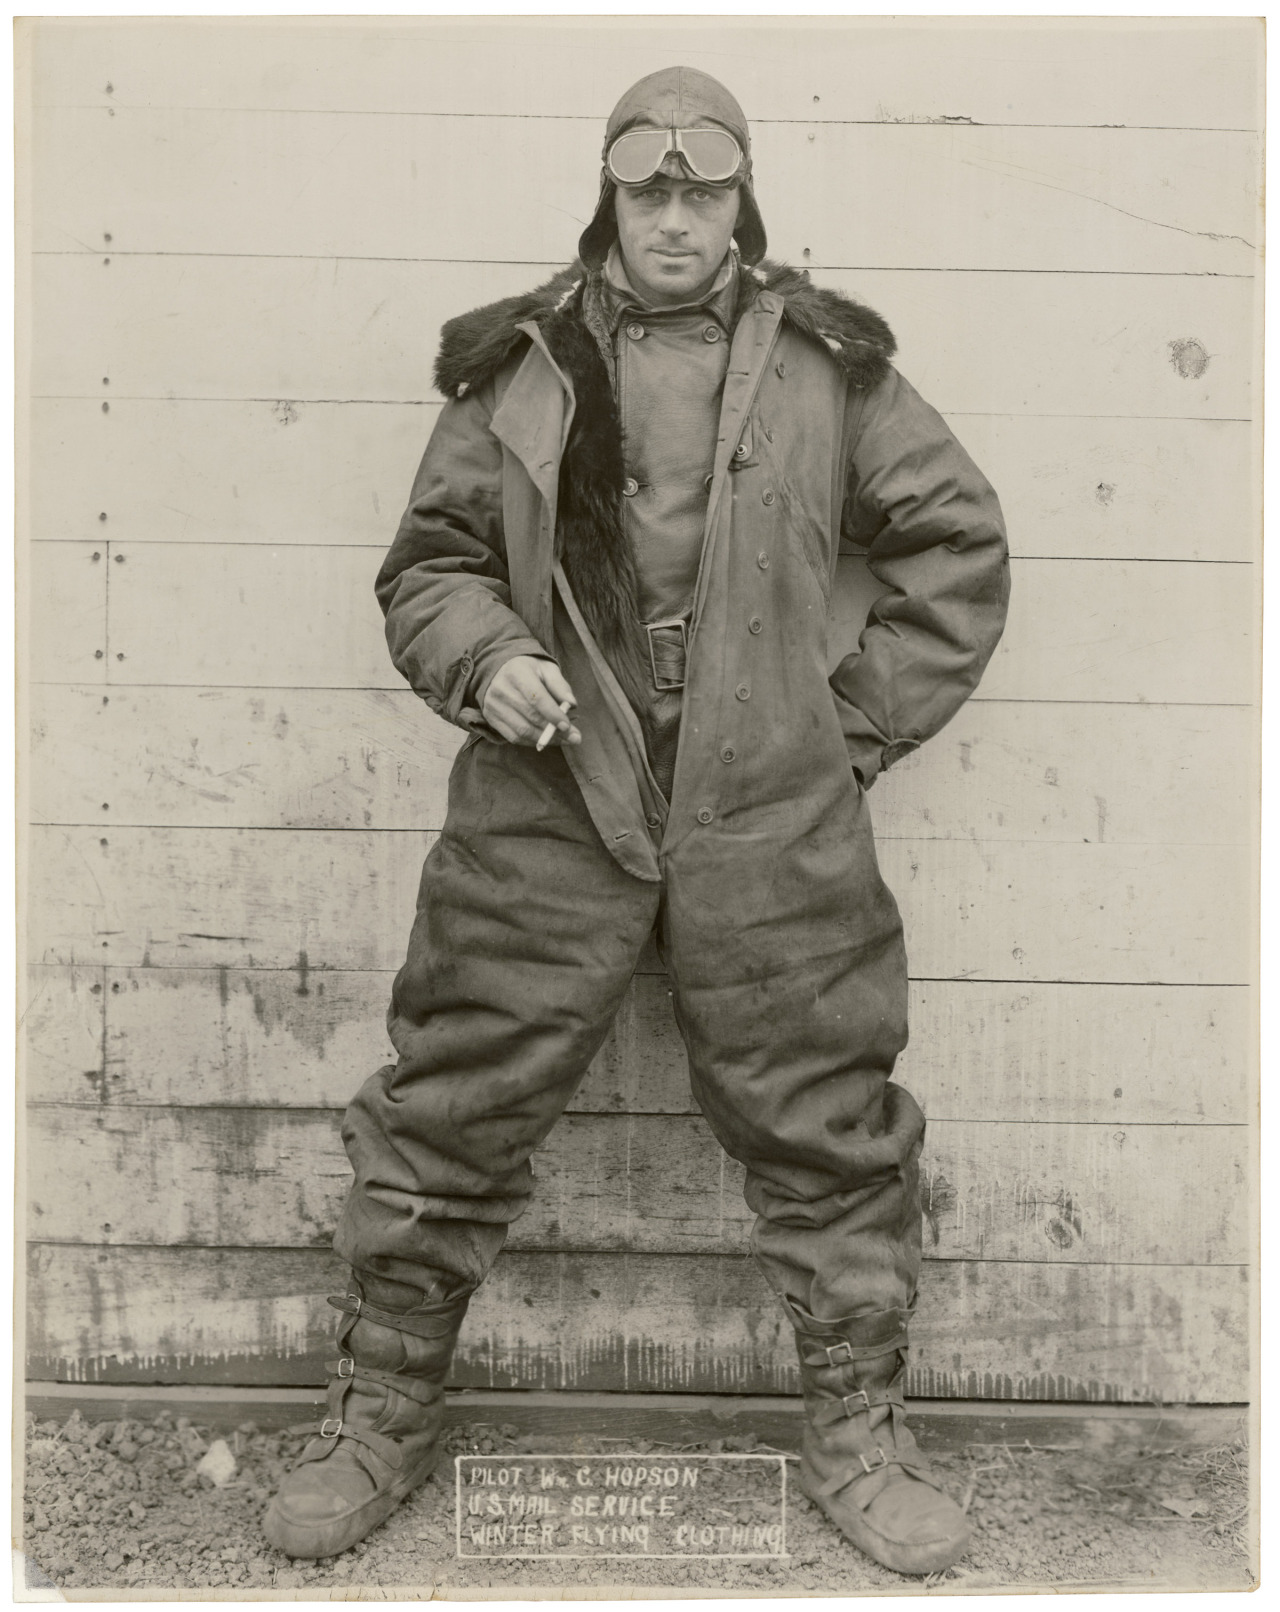 "todaysdocument:   Pilot William C. Hopson of the U.S. Mail Service in Winter Flying Clothing  Regularly scheduled airmail service first began in the United States on May 15, 1918.  ""Wild Bill"" Hopson remains one of the more colorful of the early airmail pilots.  A former cab driver who survived several close calls (once landing upside down in a cornfield), he perished when his plane crashed during a storm in 1928.  Check out his ""Pilot Story"" at the Smithsonian's National Postal Museum.  Wild Bill Hopson… I wonder if we're related…?"